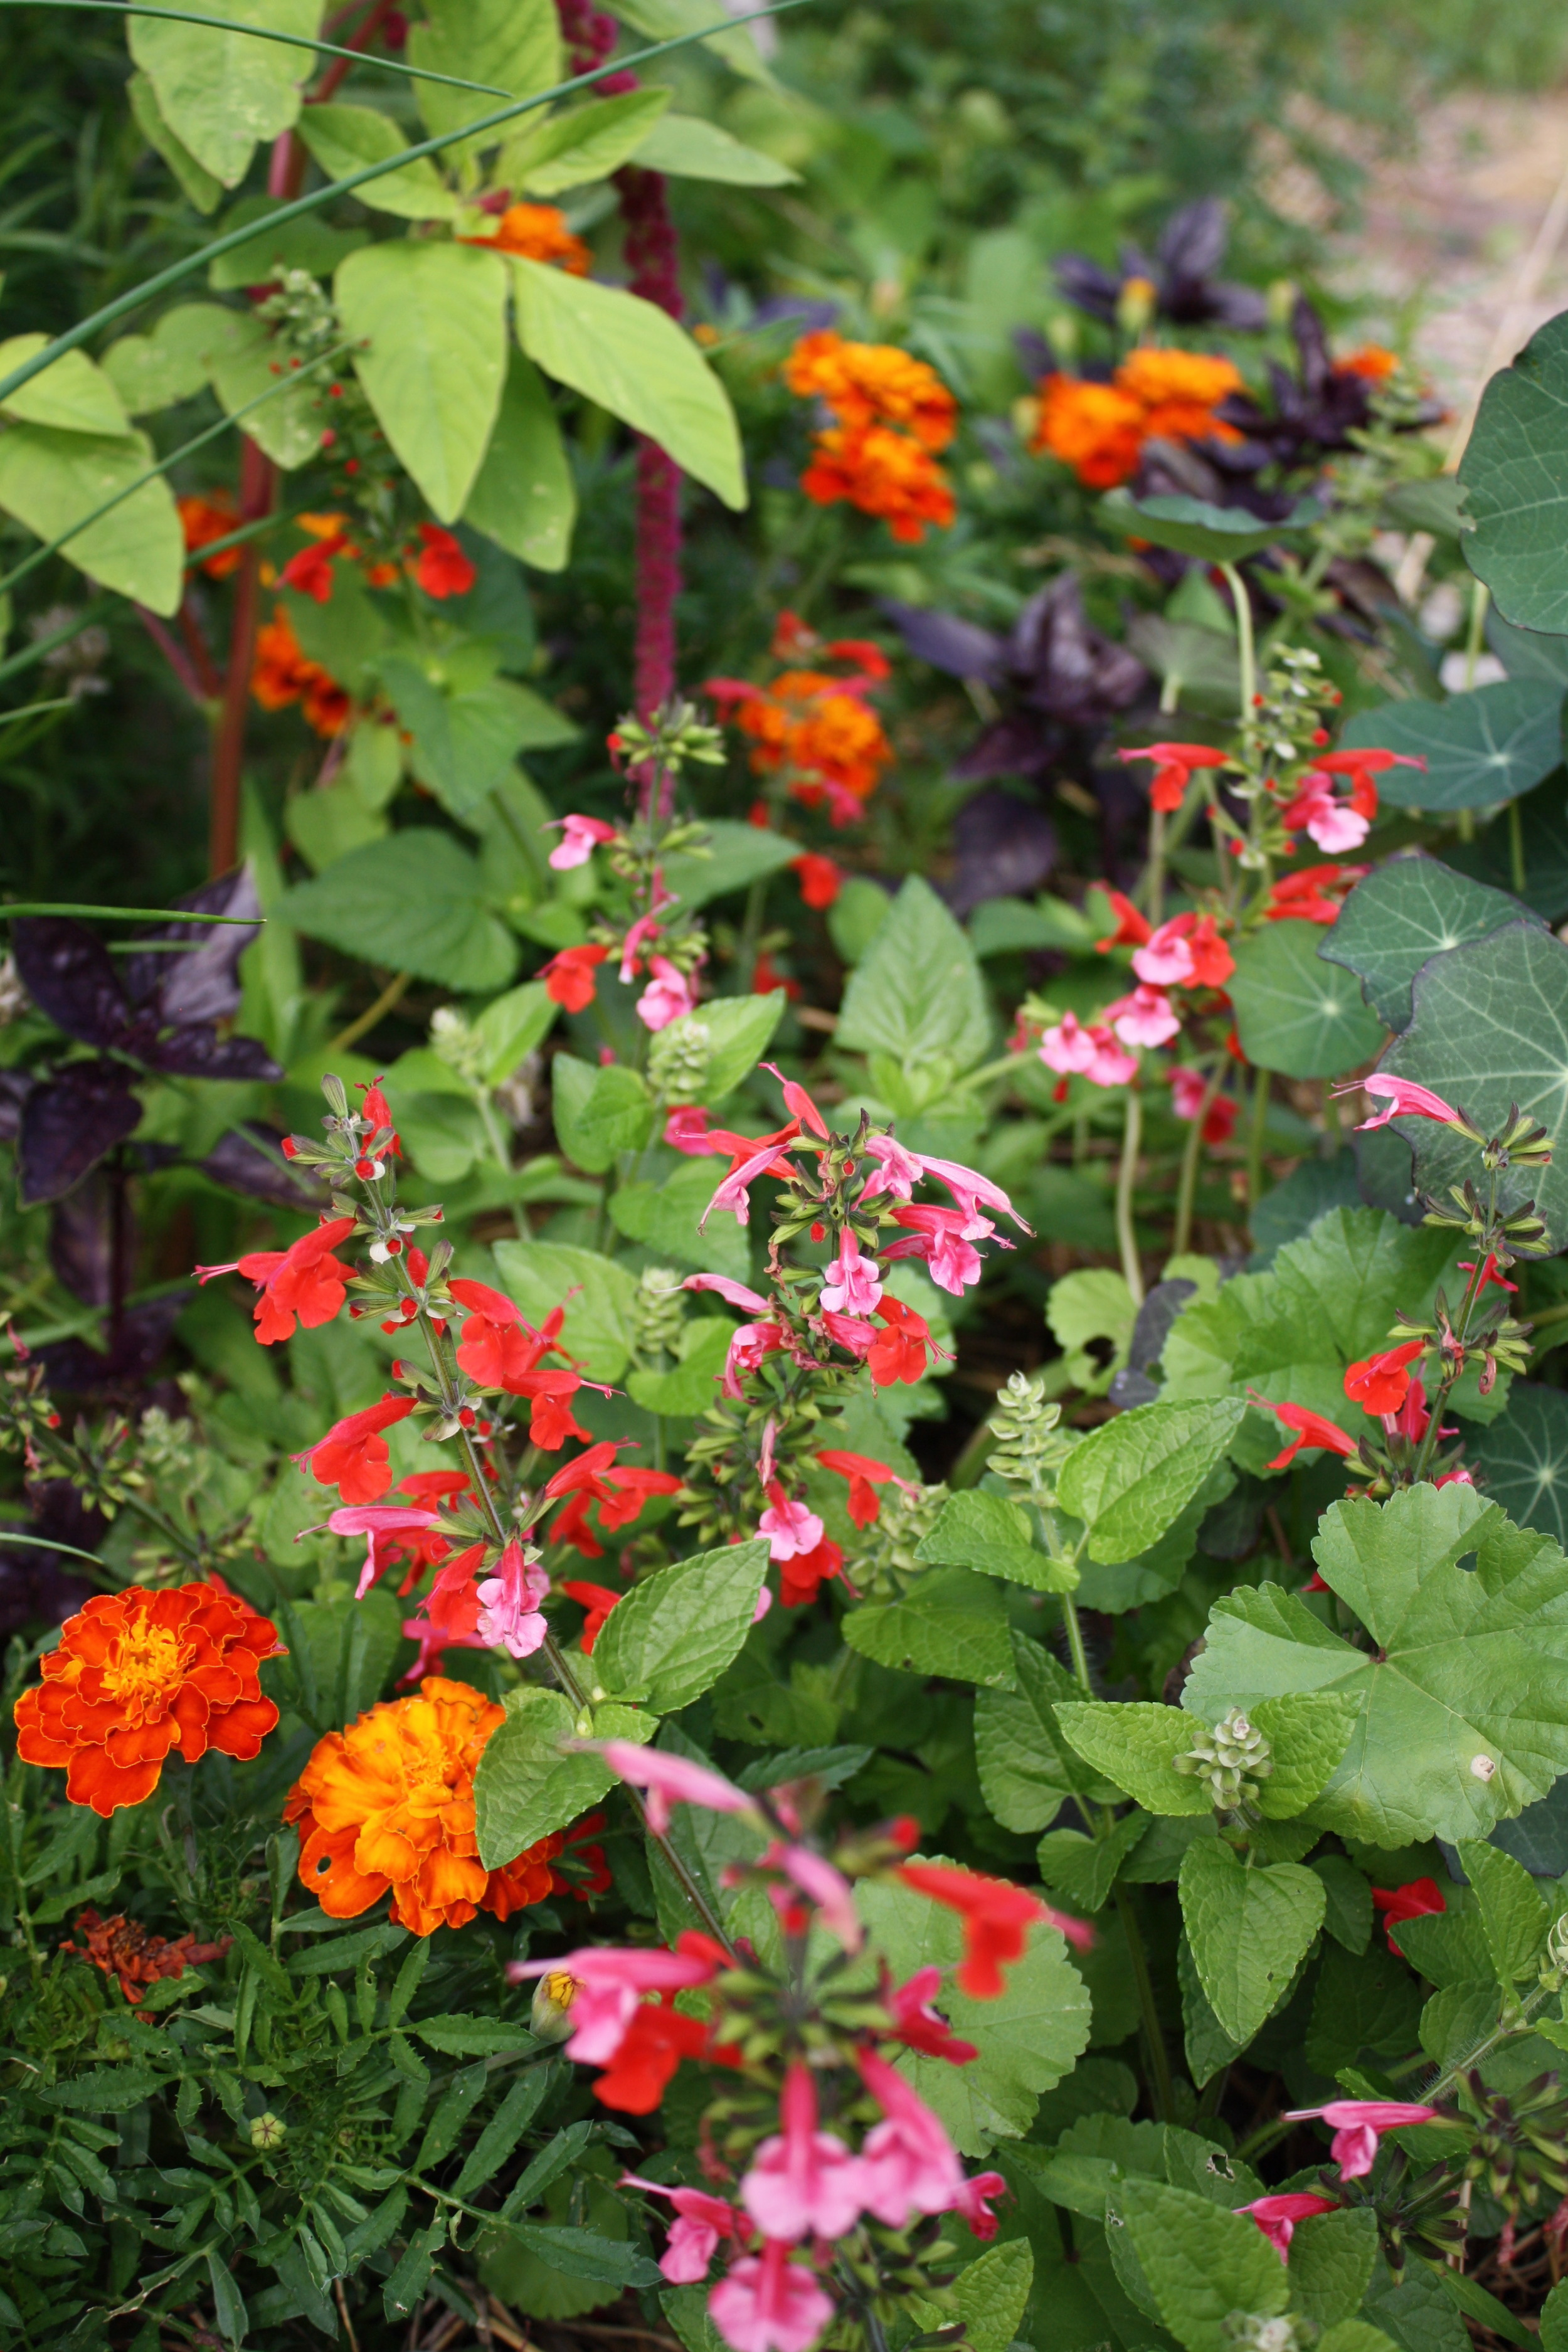 cute dwarf red salvia was new to me this year... all of the other varieties I have grown have been too tall and gangly for this bed. This one is perfect for bedding mixed with marigolds and 'Rosie' Basil